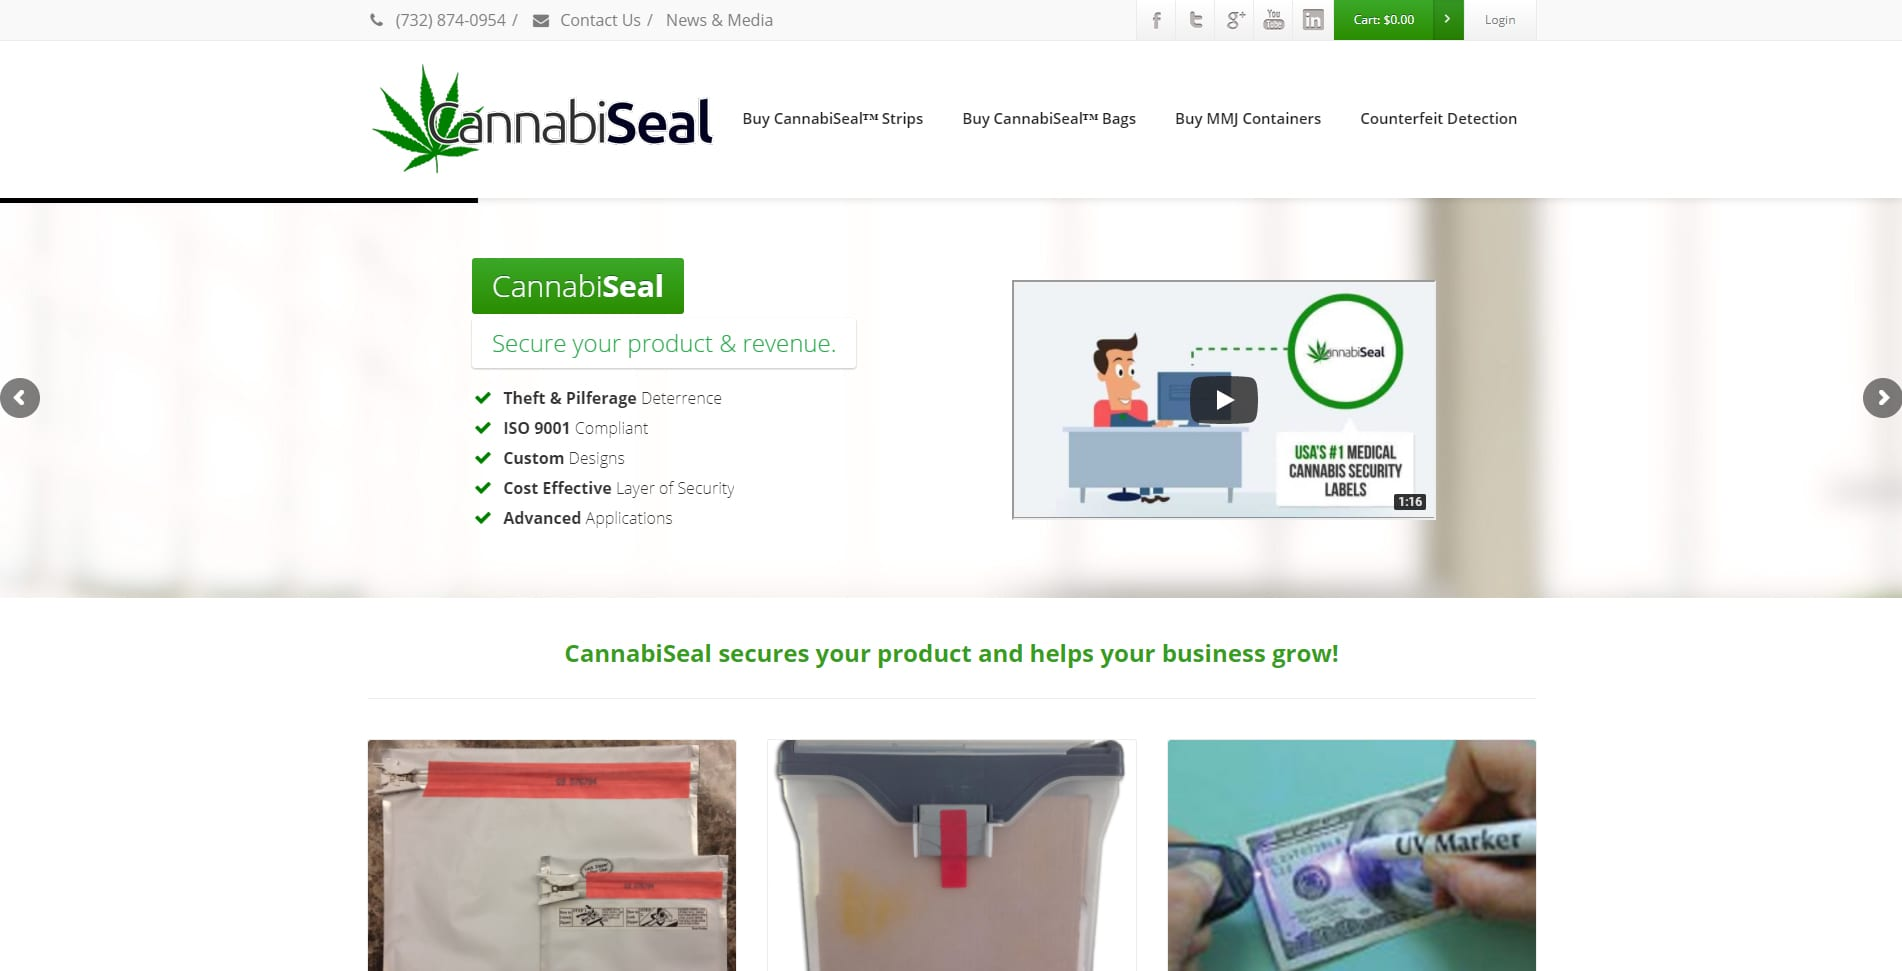 CannabiSeal - Medical Cannabis Security Products